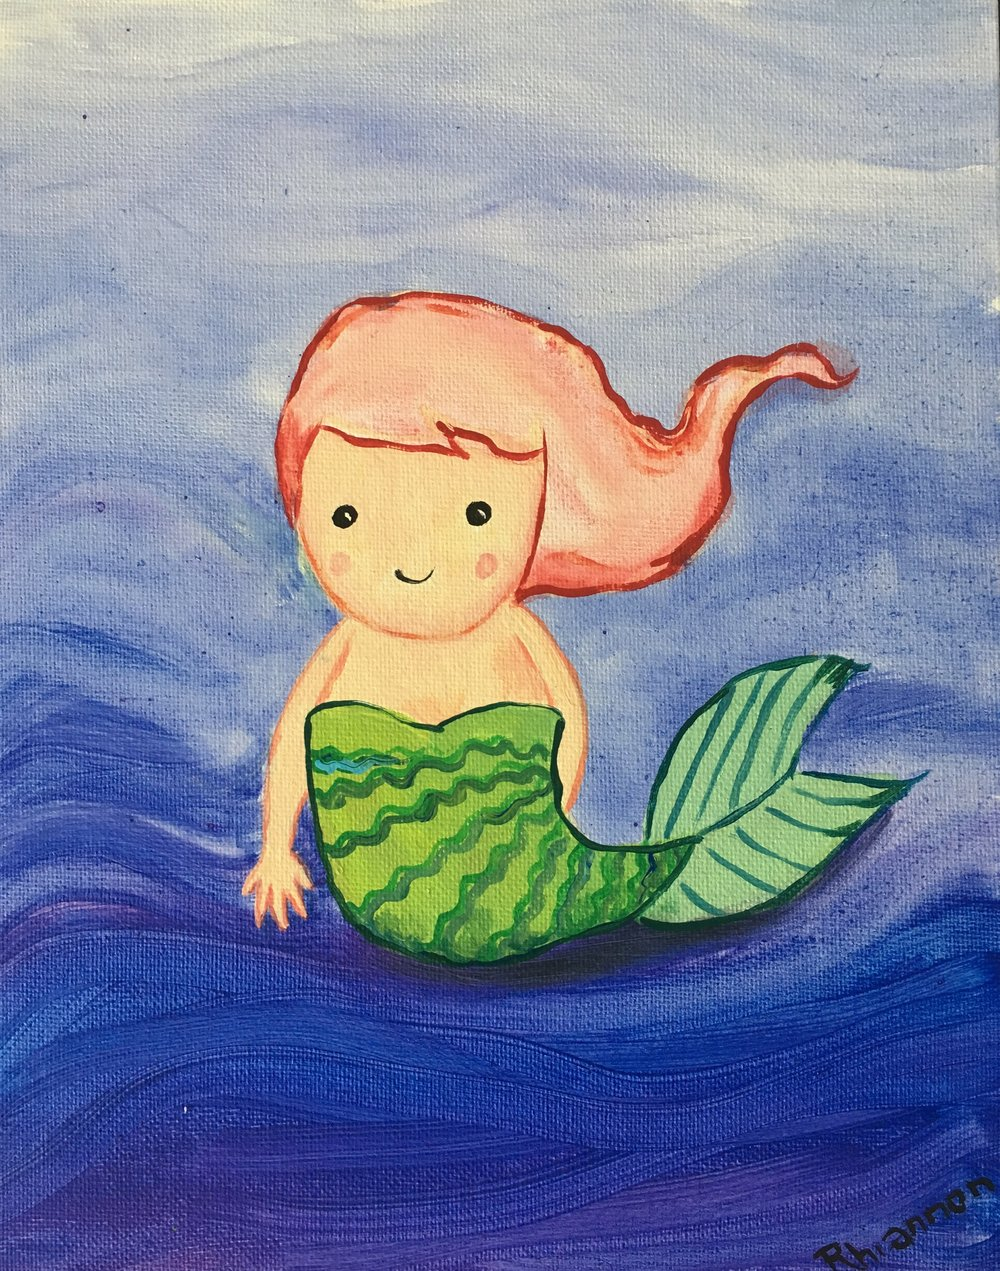 Paint this Cutie! - Rhiannon is an oil painter specializing in beautiful realistic mermaid portraits in lovely, magical ocean worlds. She also creates beautiful custom mermaid portraits as well, using photographs.    Check out her gorgeous work HERE!